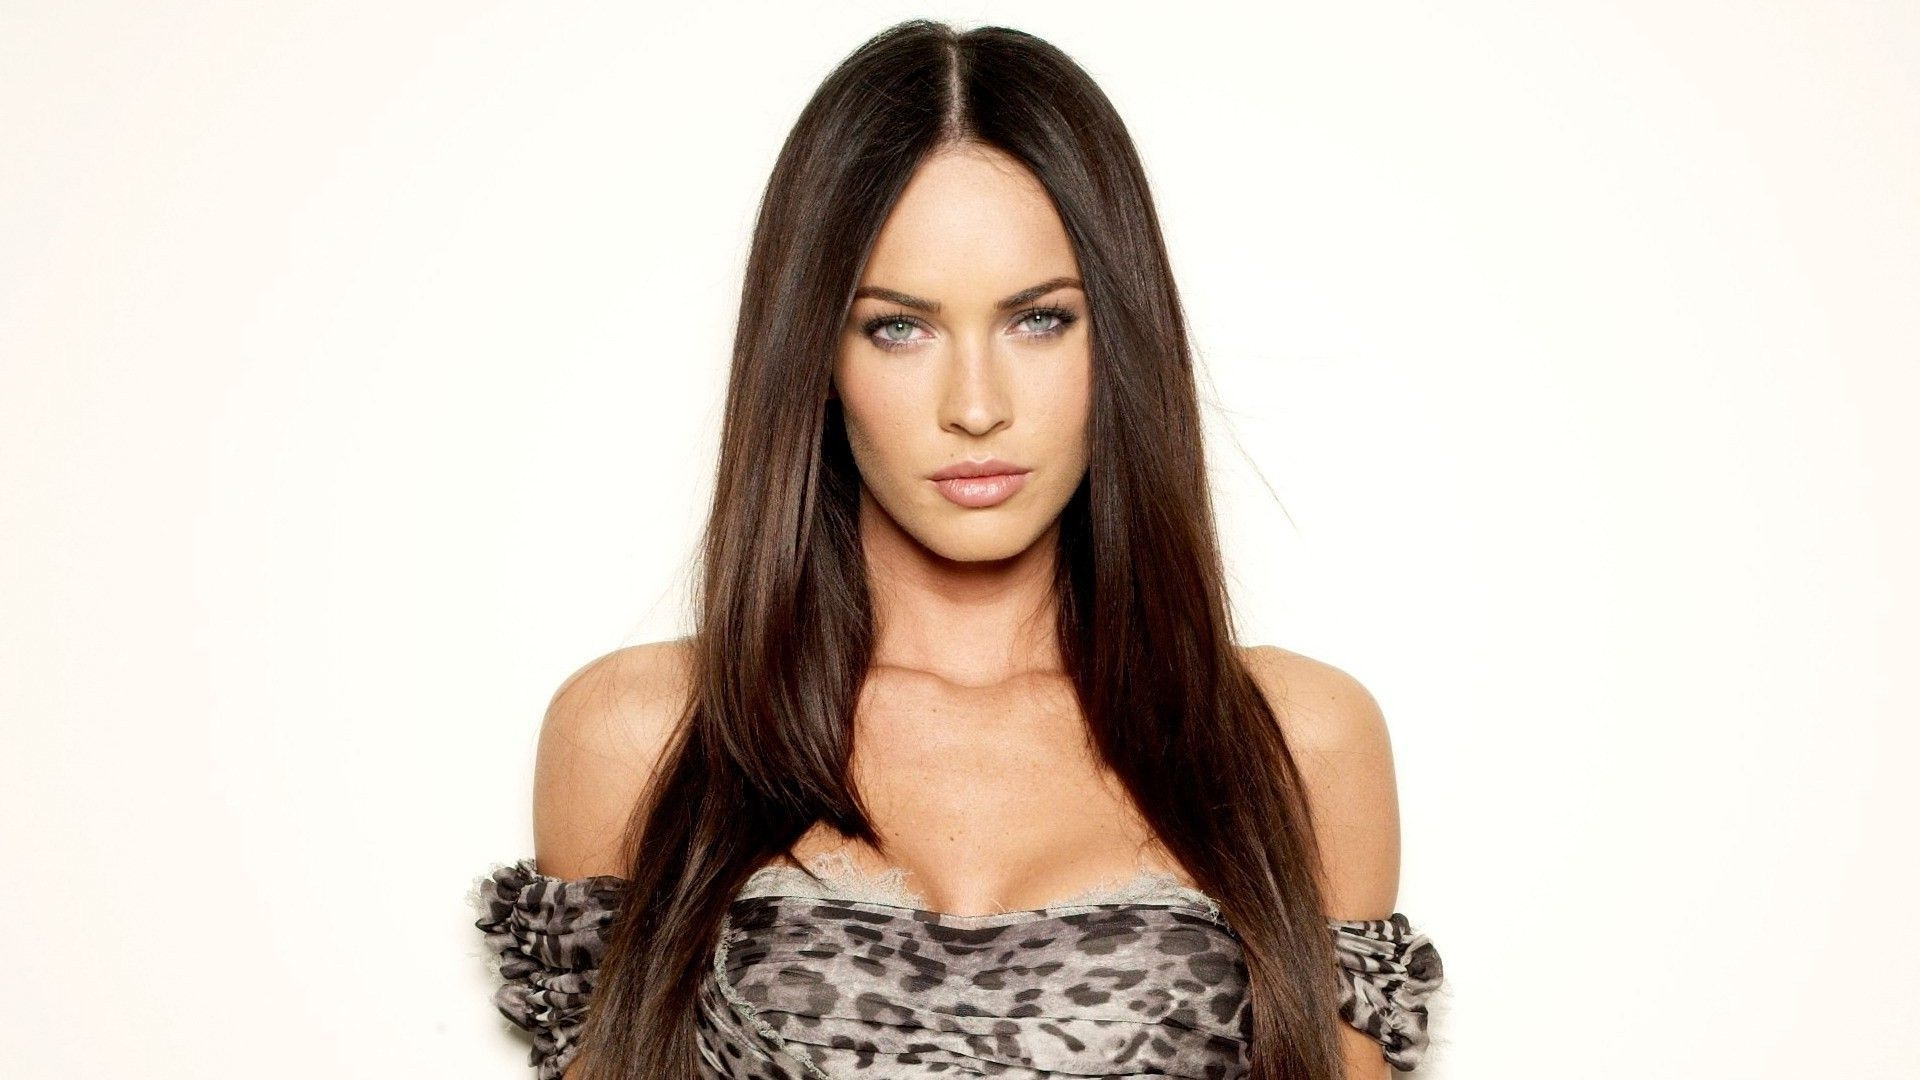 Megan Fox Wallpapers Images Photos Pictures Backgrounds